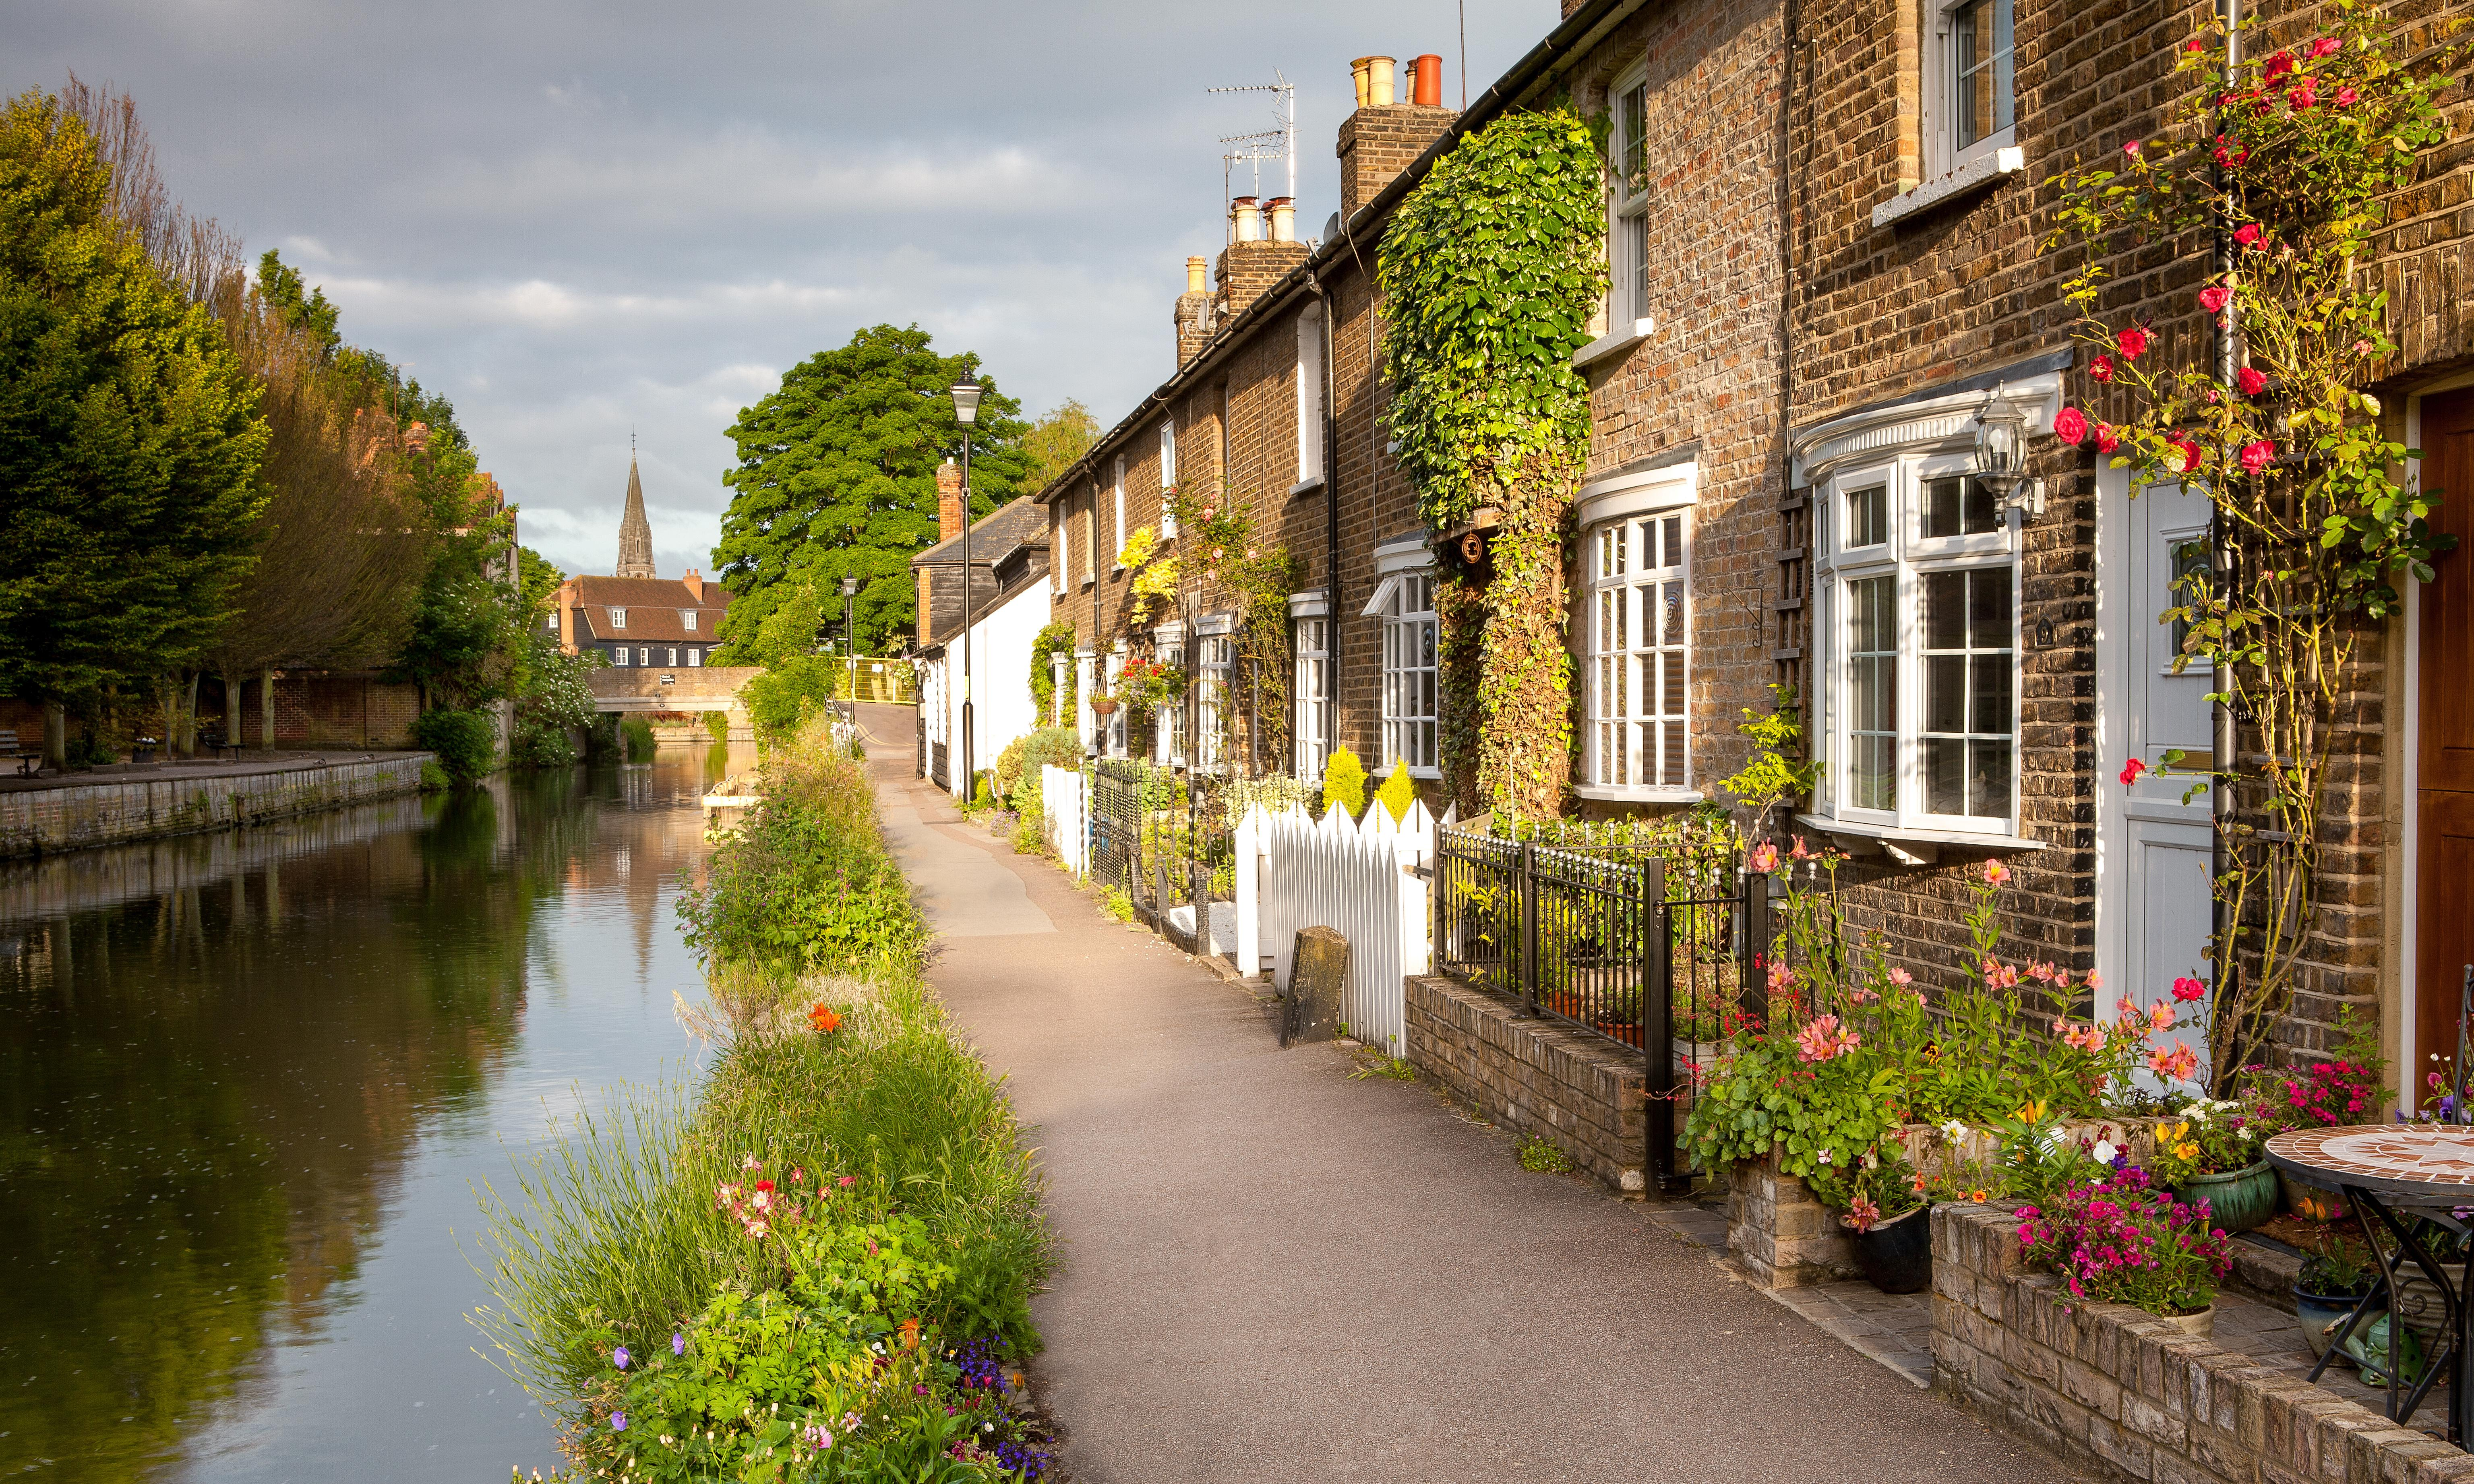 Let's move to Hertford: if it's cool enough for George Ezra…